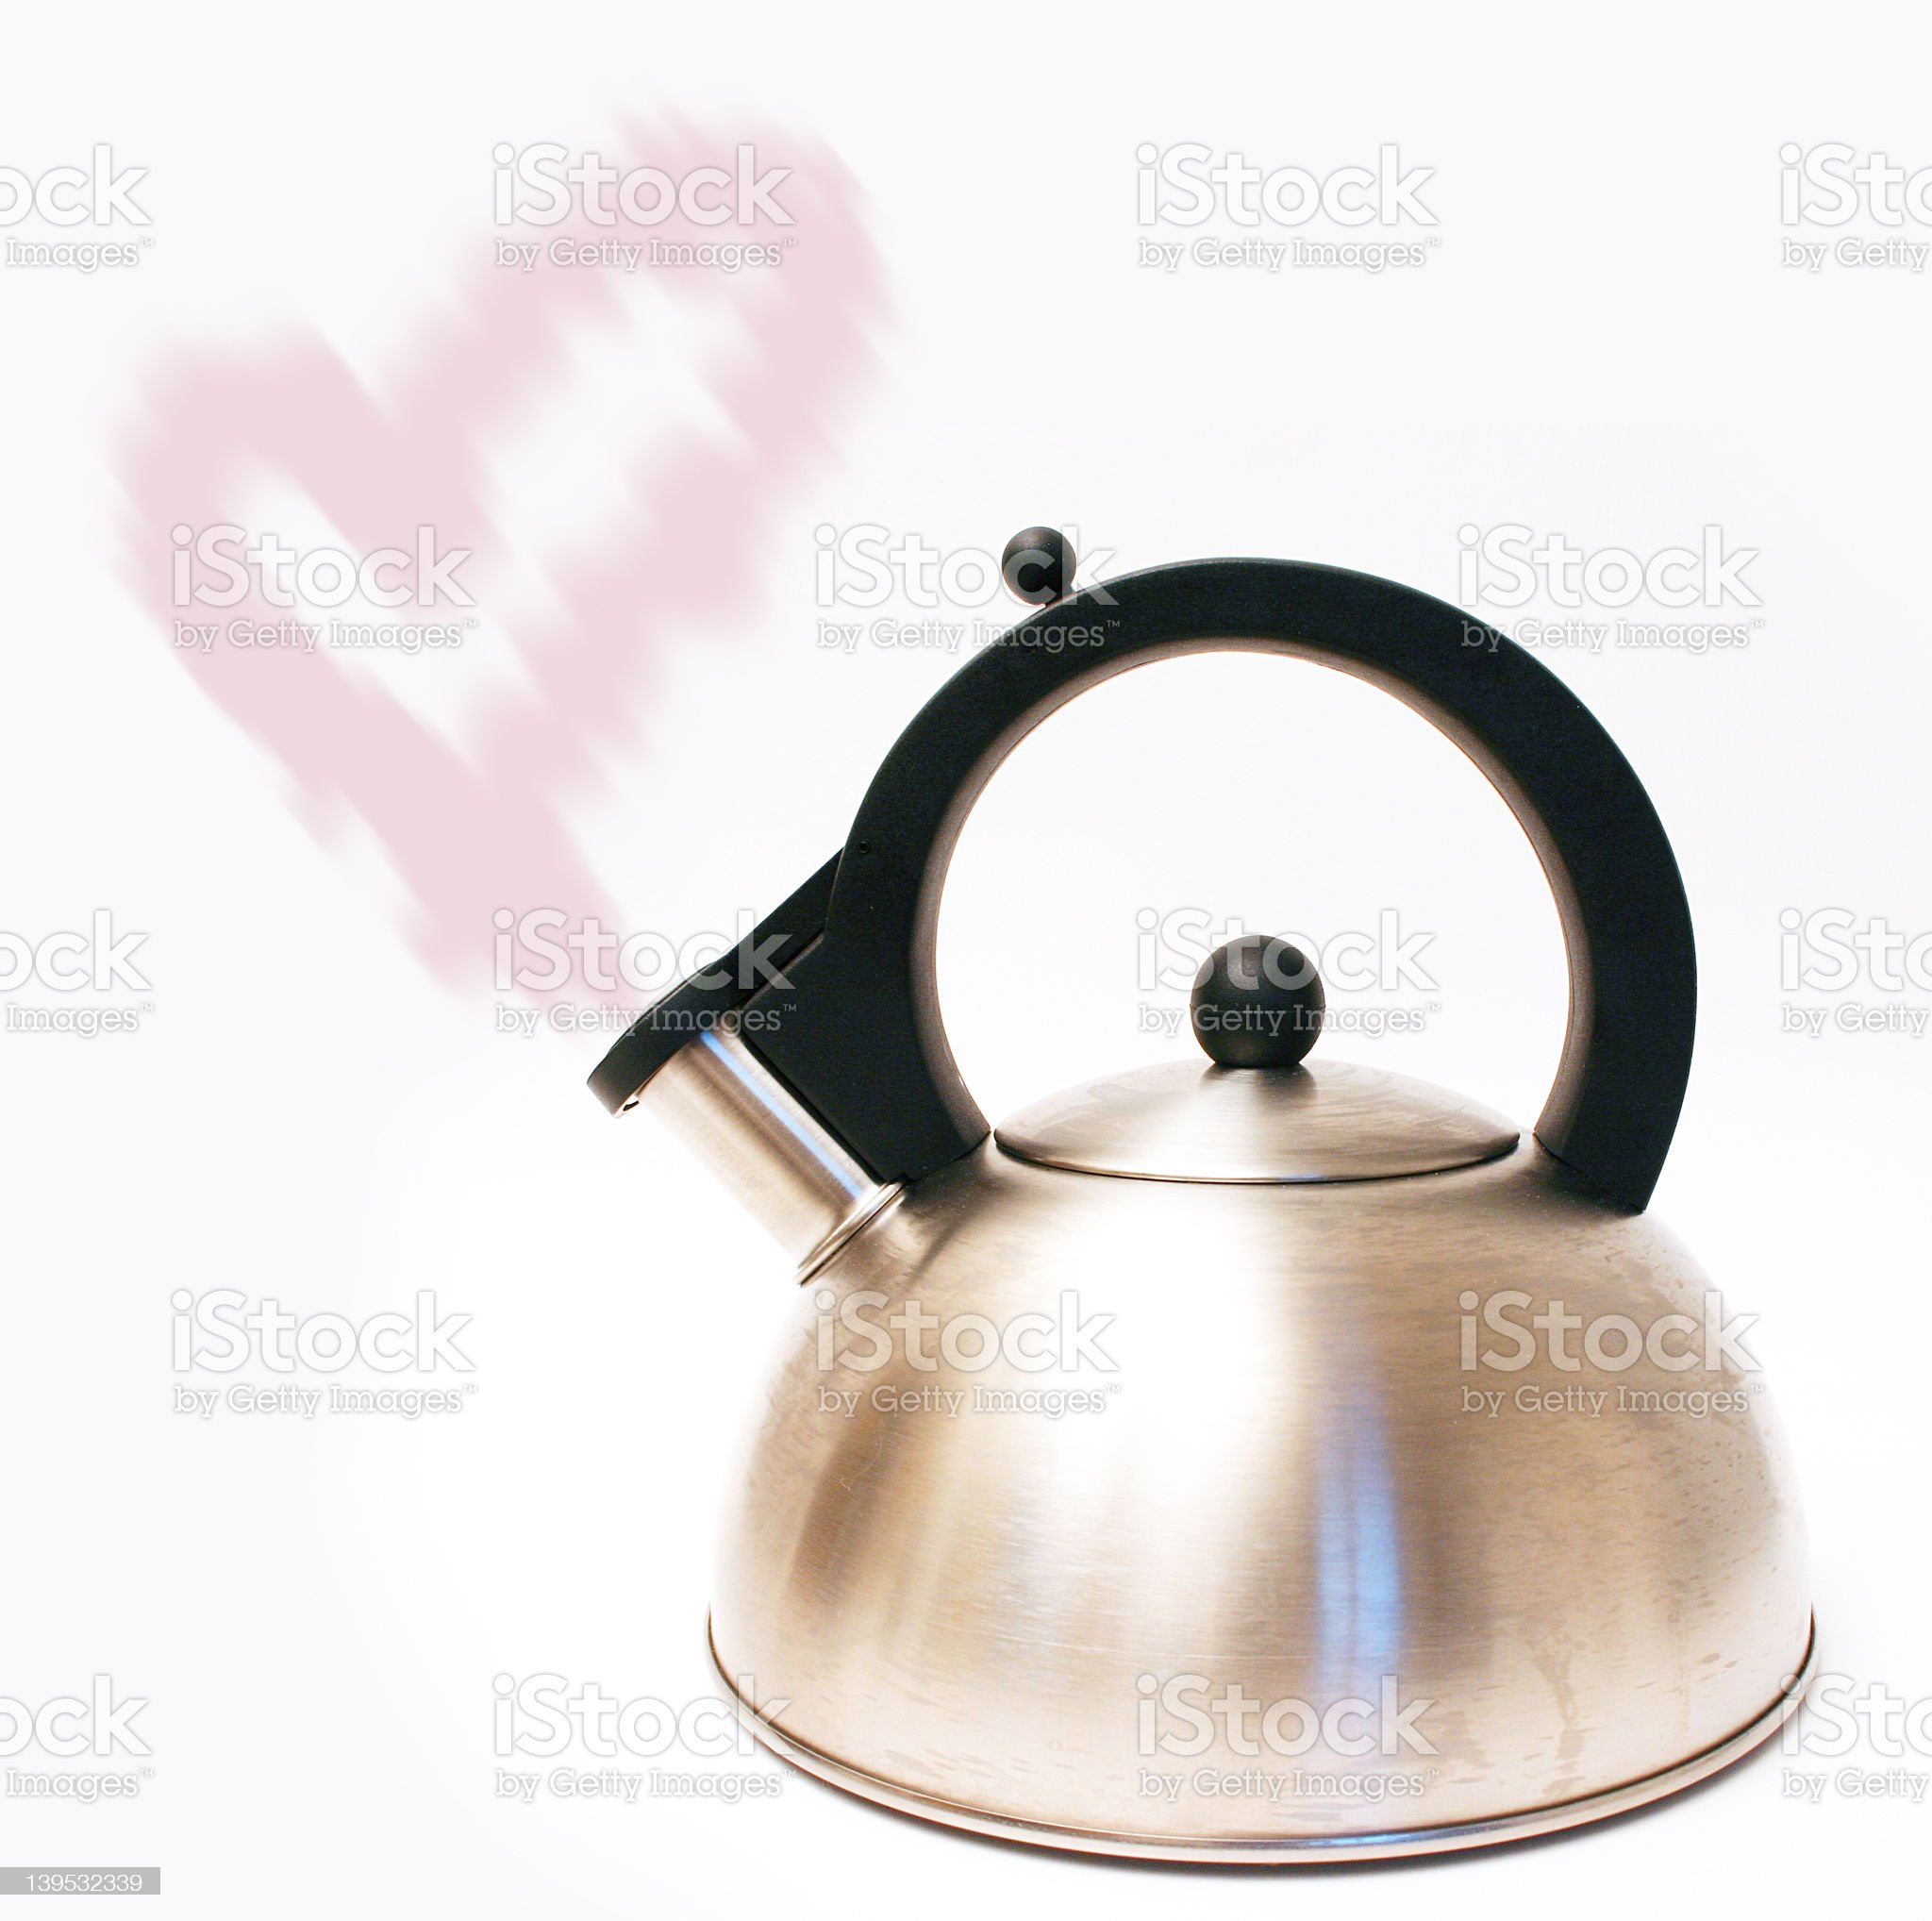 Kettle royalty-free stock photo